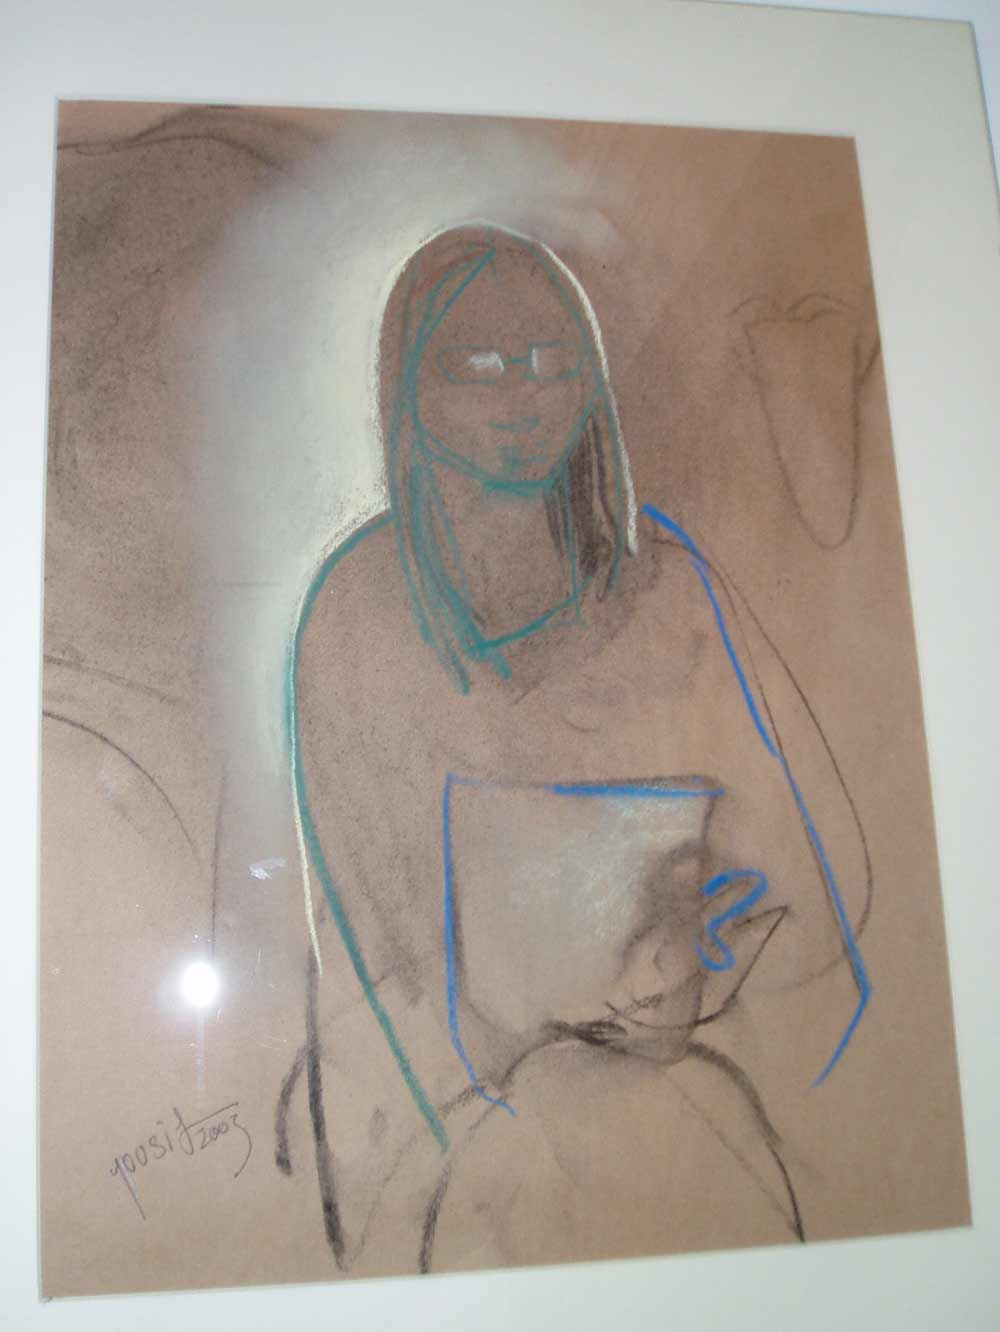 Chalk portrait by Yousif Naser, 2003